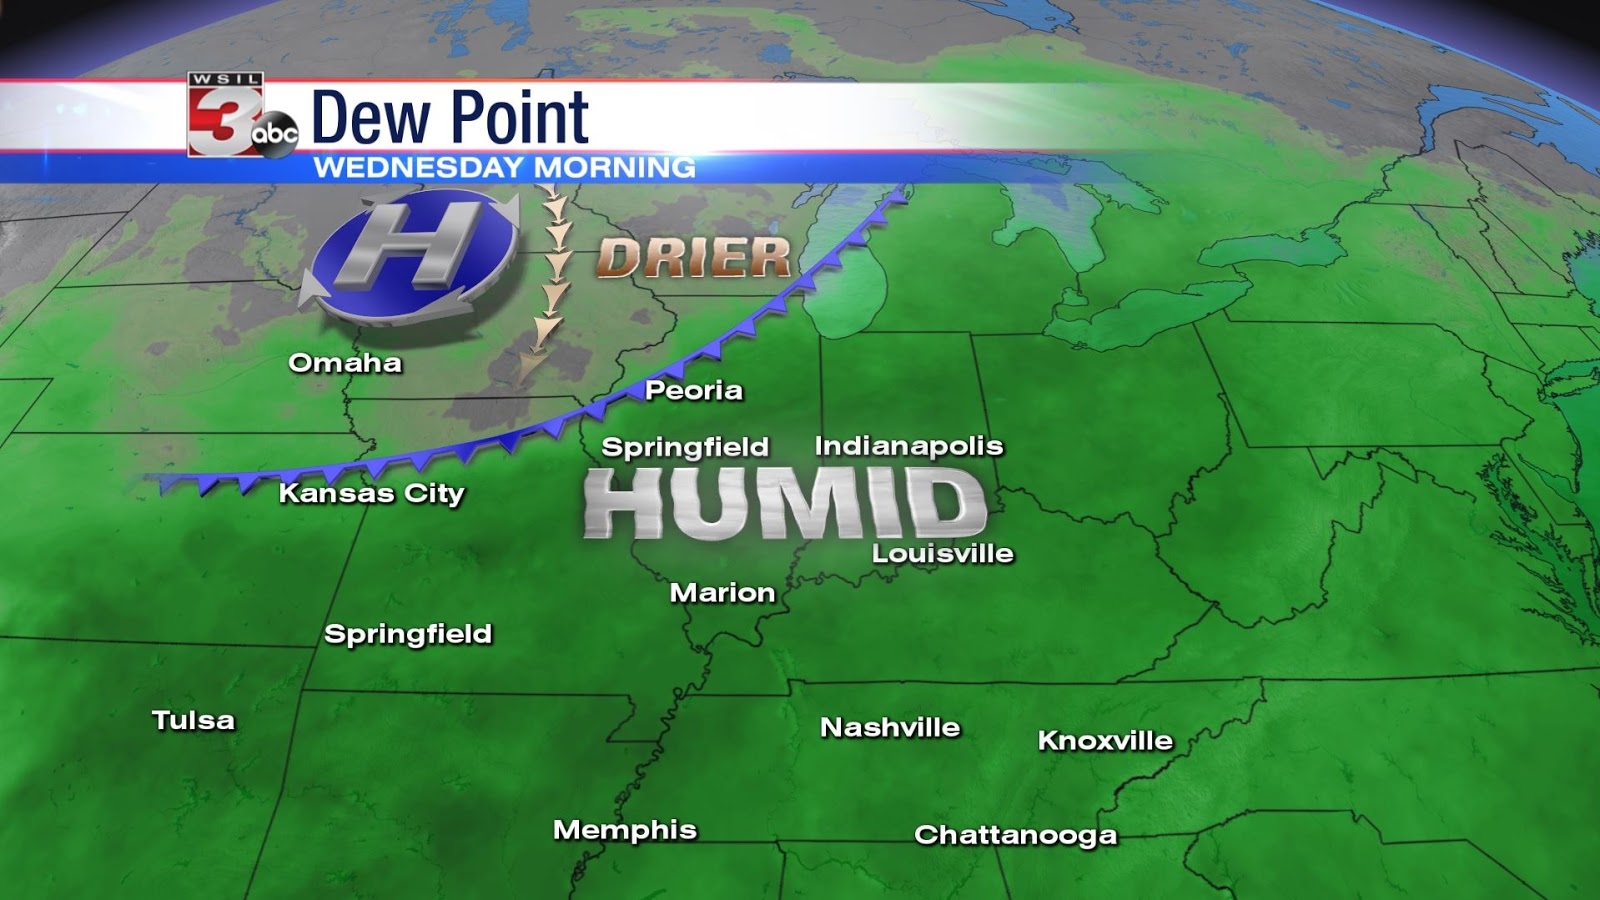 wednesday morning dew point map highlighting the drier air moving in from the north